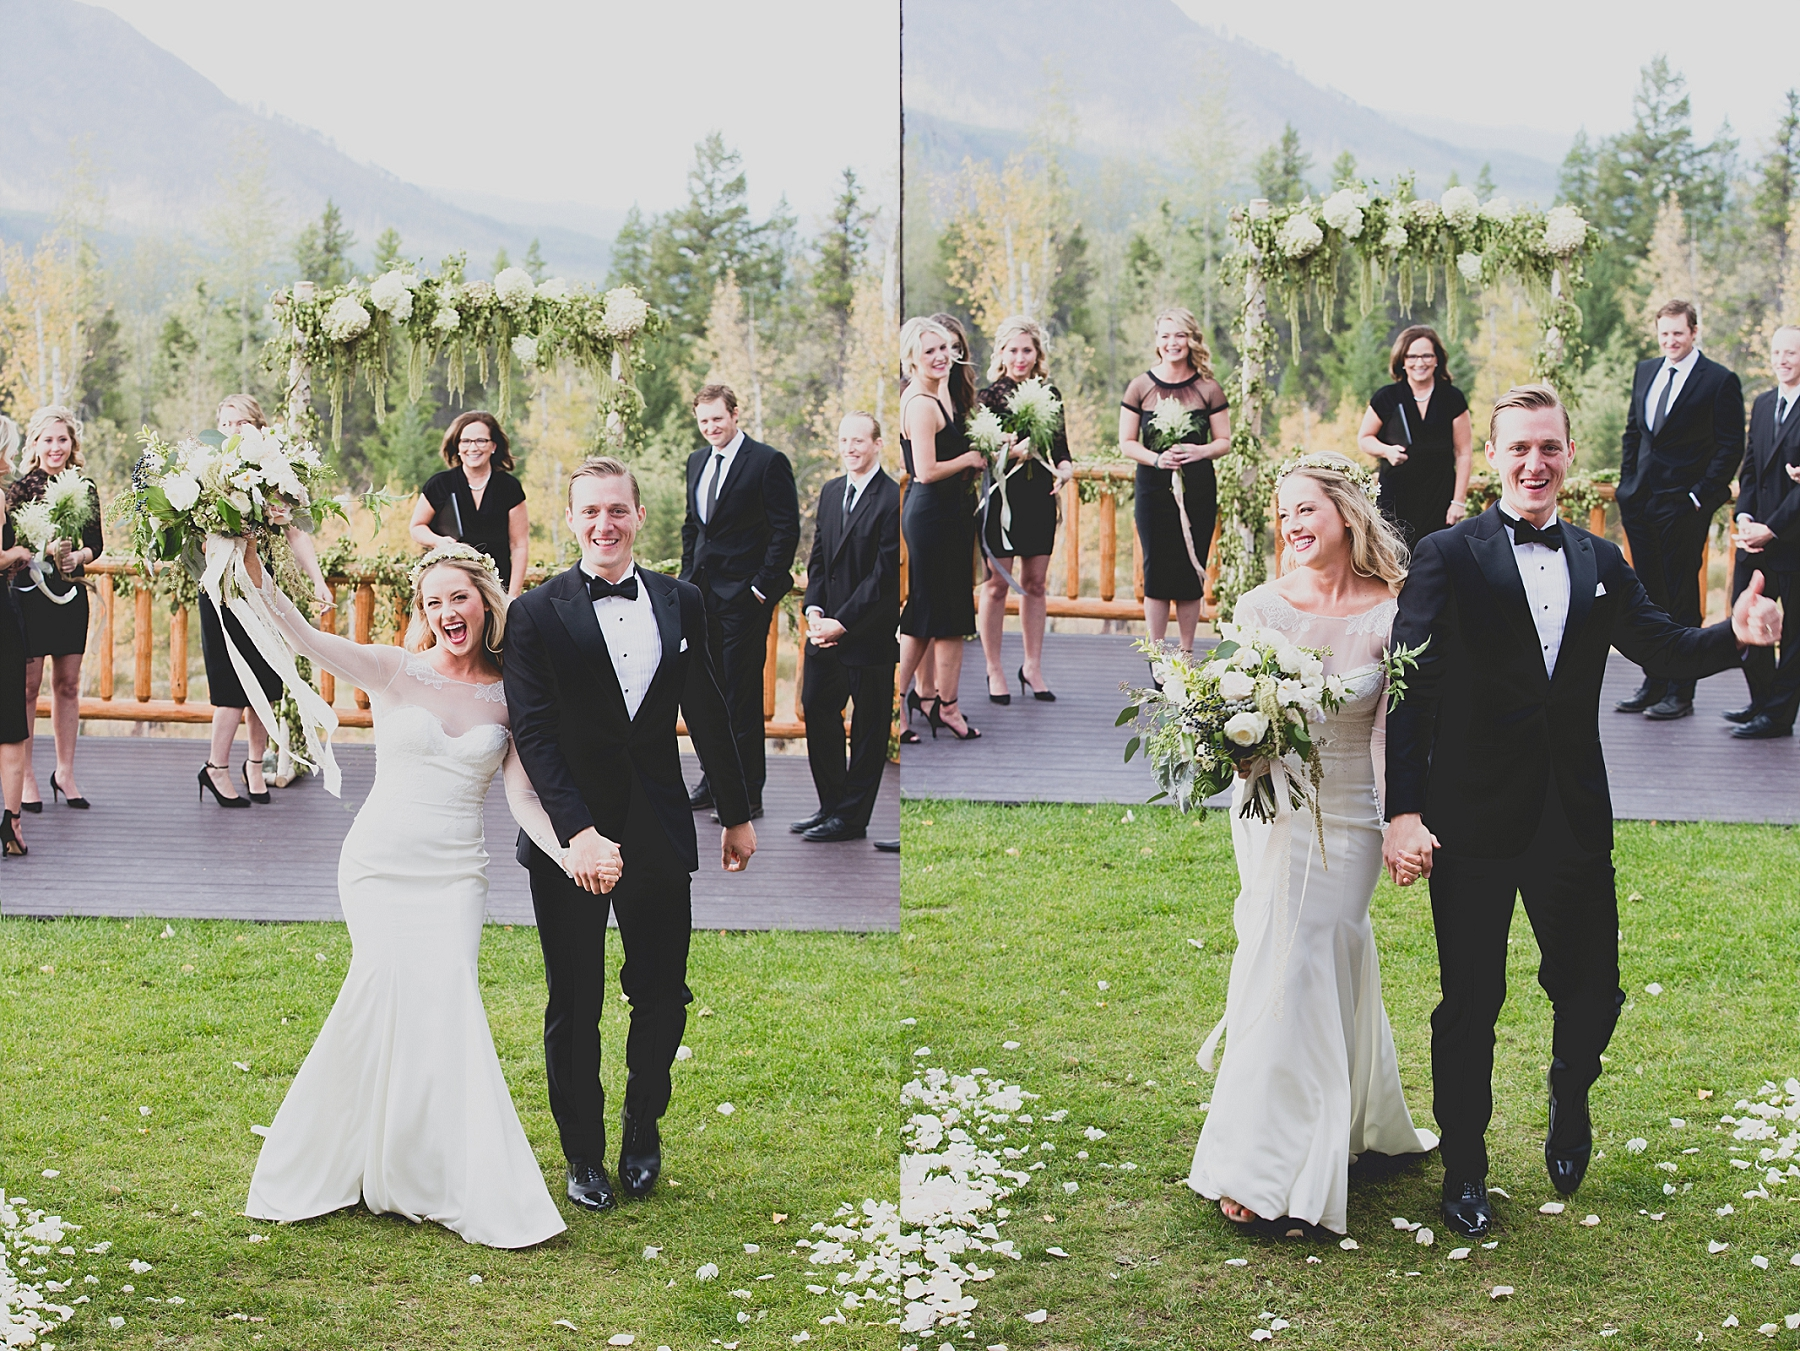 Jennifer_Mooney_Photo_glacier_park_wedding_Beargrass_florals_fall_wedding_elegant_montana_destination_velvet_bride_katie_may_dress_verona_gown_00097.jpg